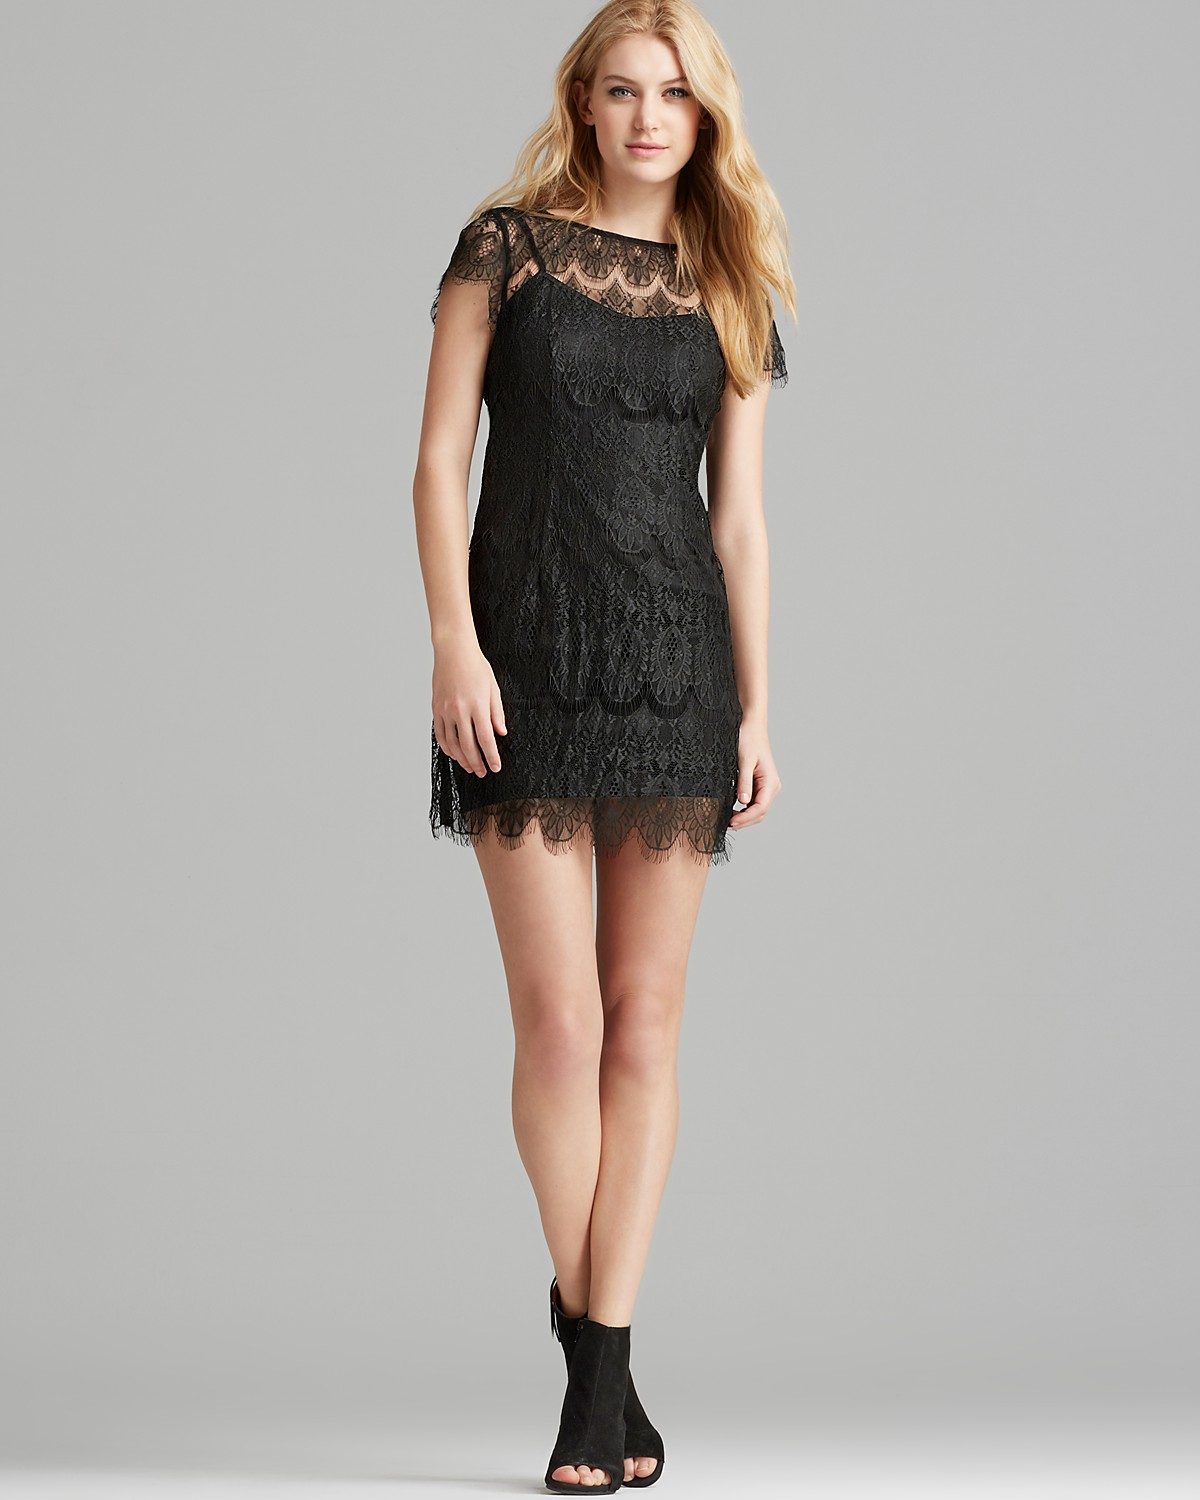 MINKPINK Dress - Lace | Bloomingdale's